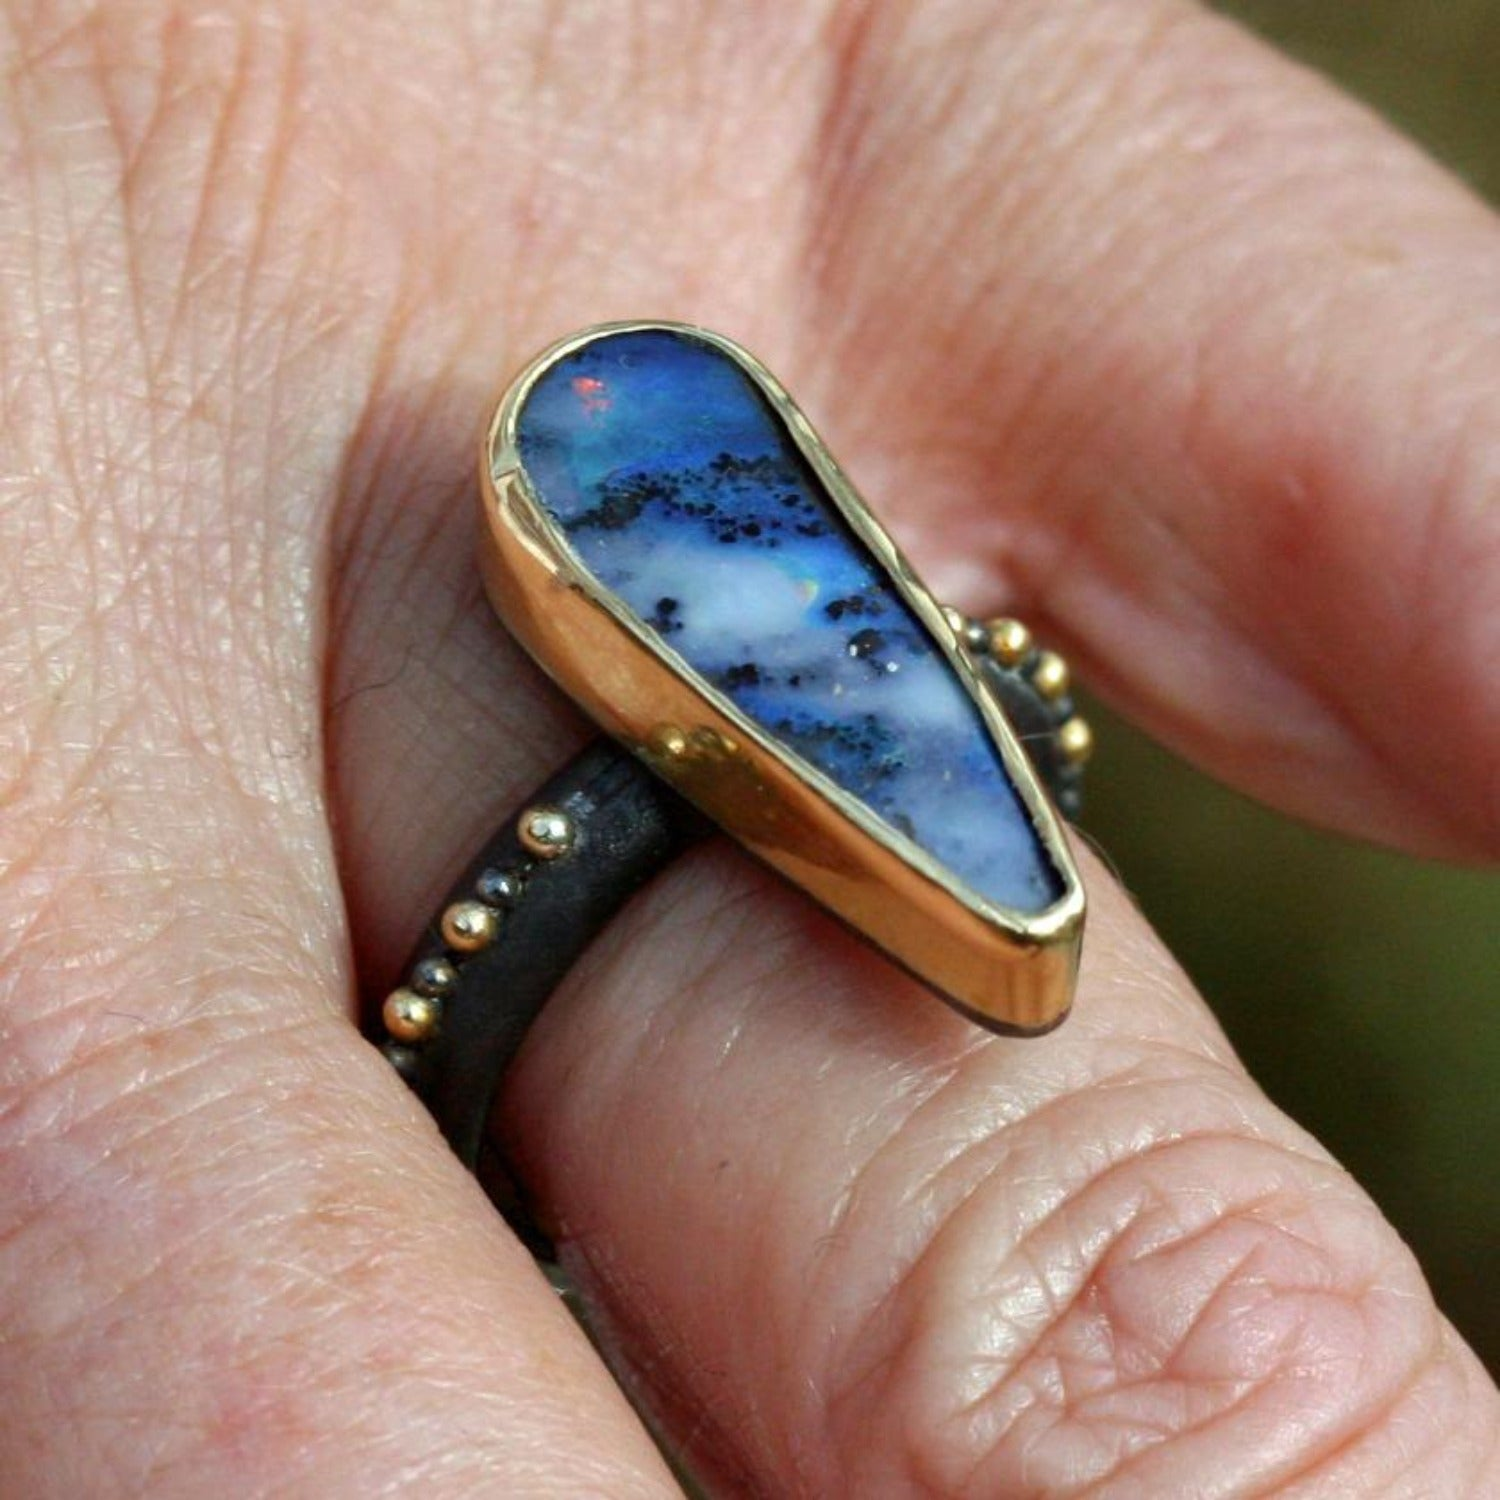 Dark Sky Blue Boulder Opal Ring - Size 71/2-18k Gold on Sterling Silver - Boho, Australian Opal, Granulation